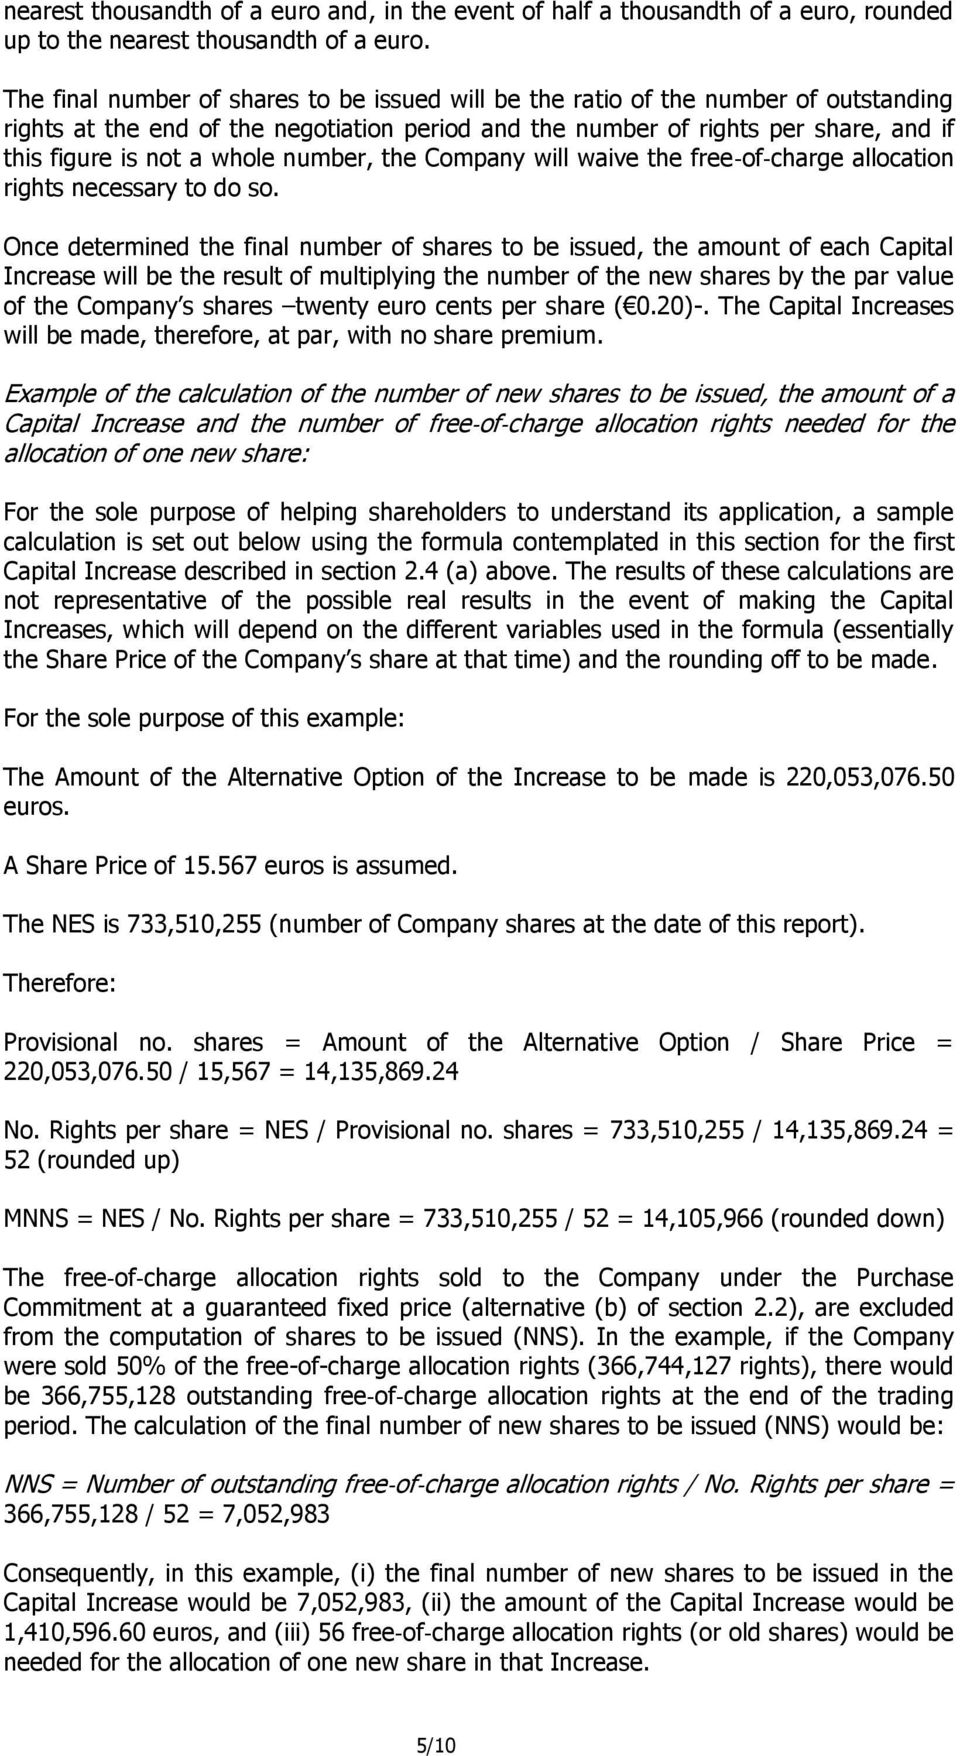 whole number, the Company will waive the free of charge allocation rights necessary to do so.